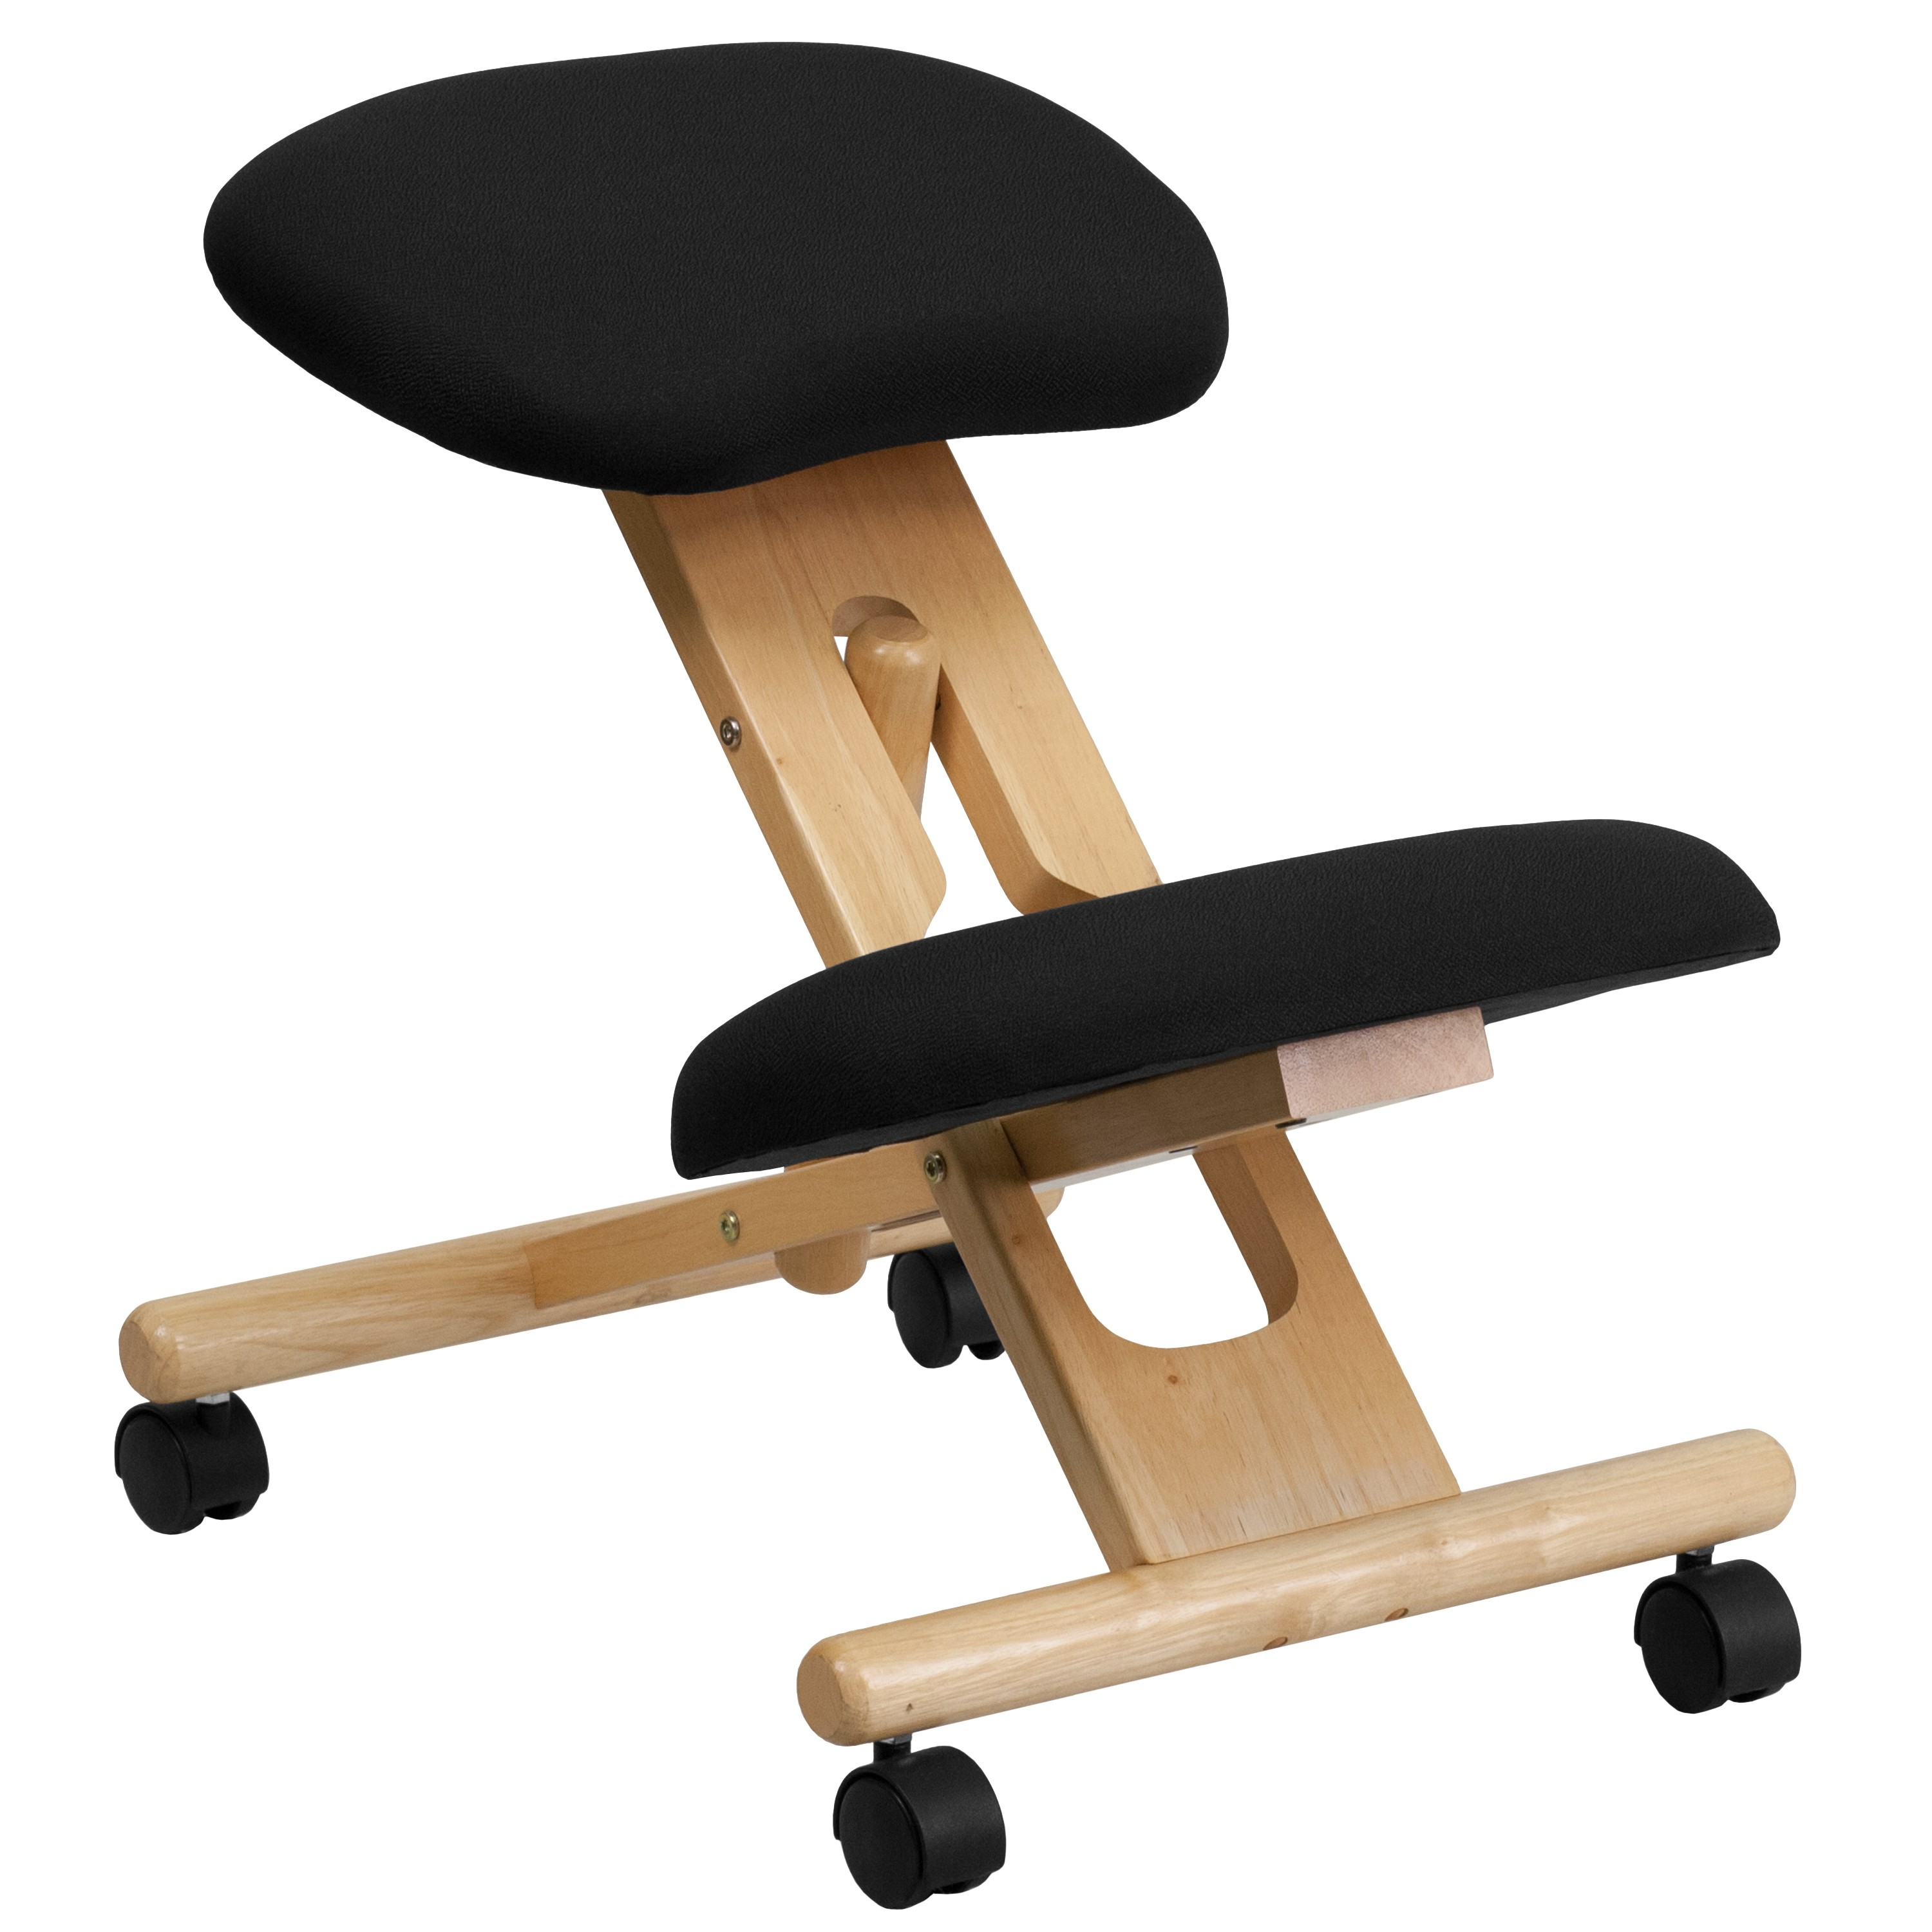 MFO Mobile Wooden Ergonomic Kneeling Chair in Black Fabric